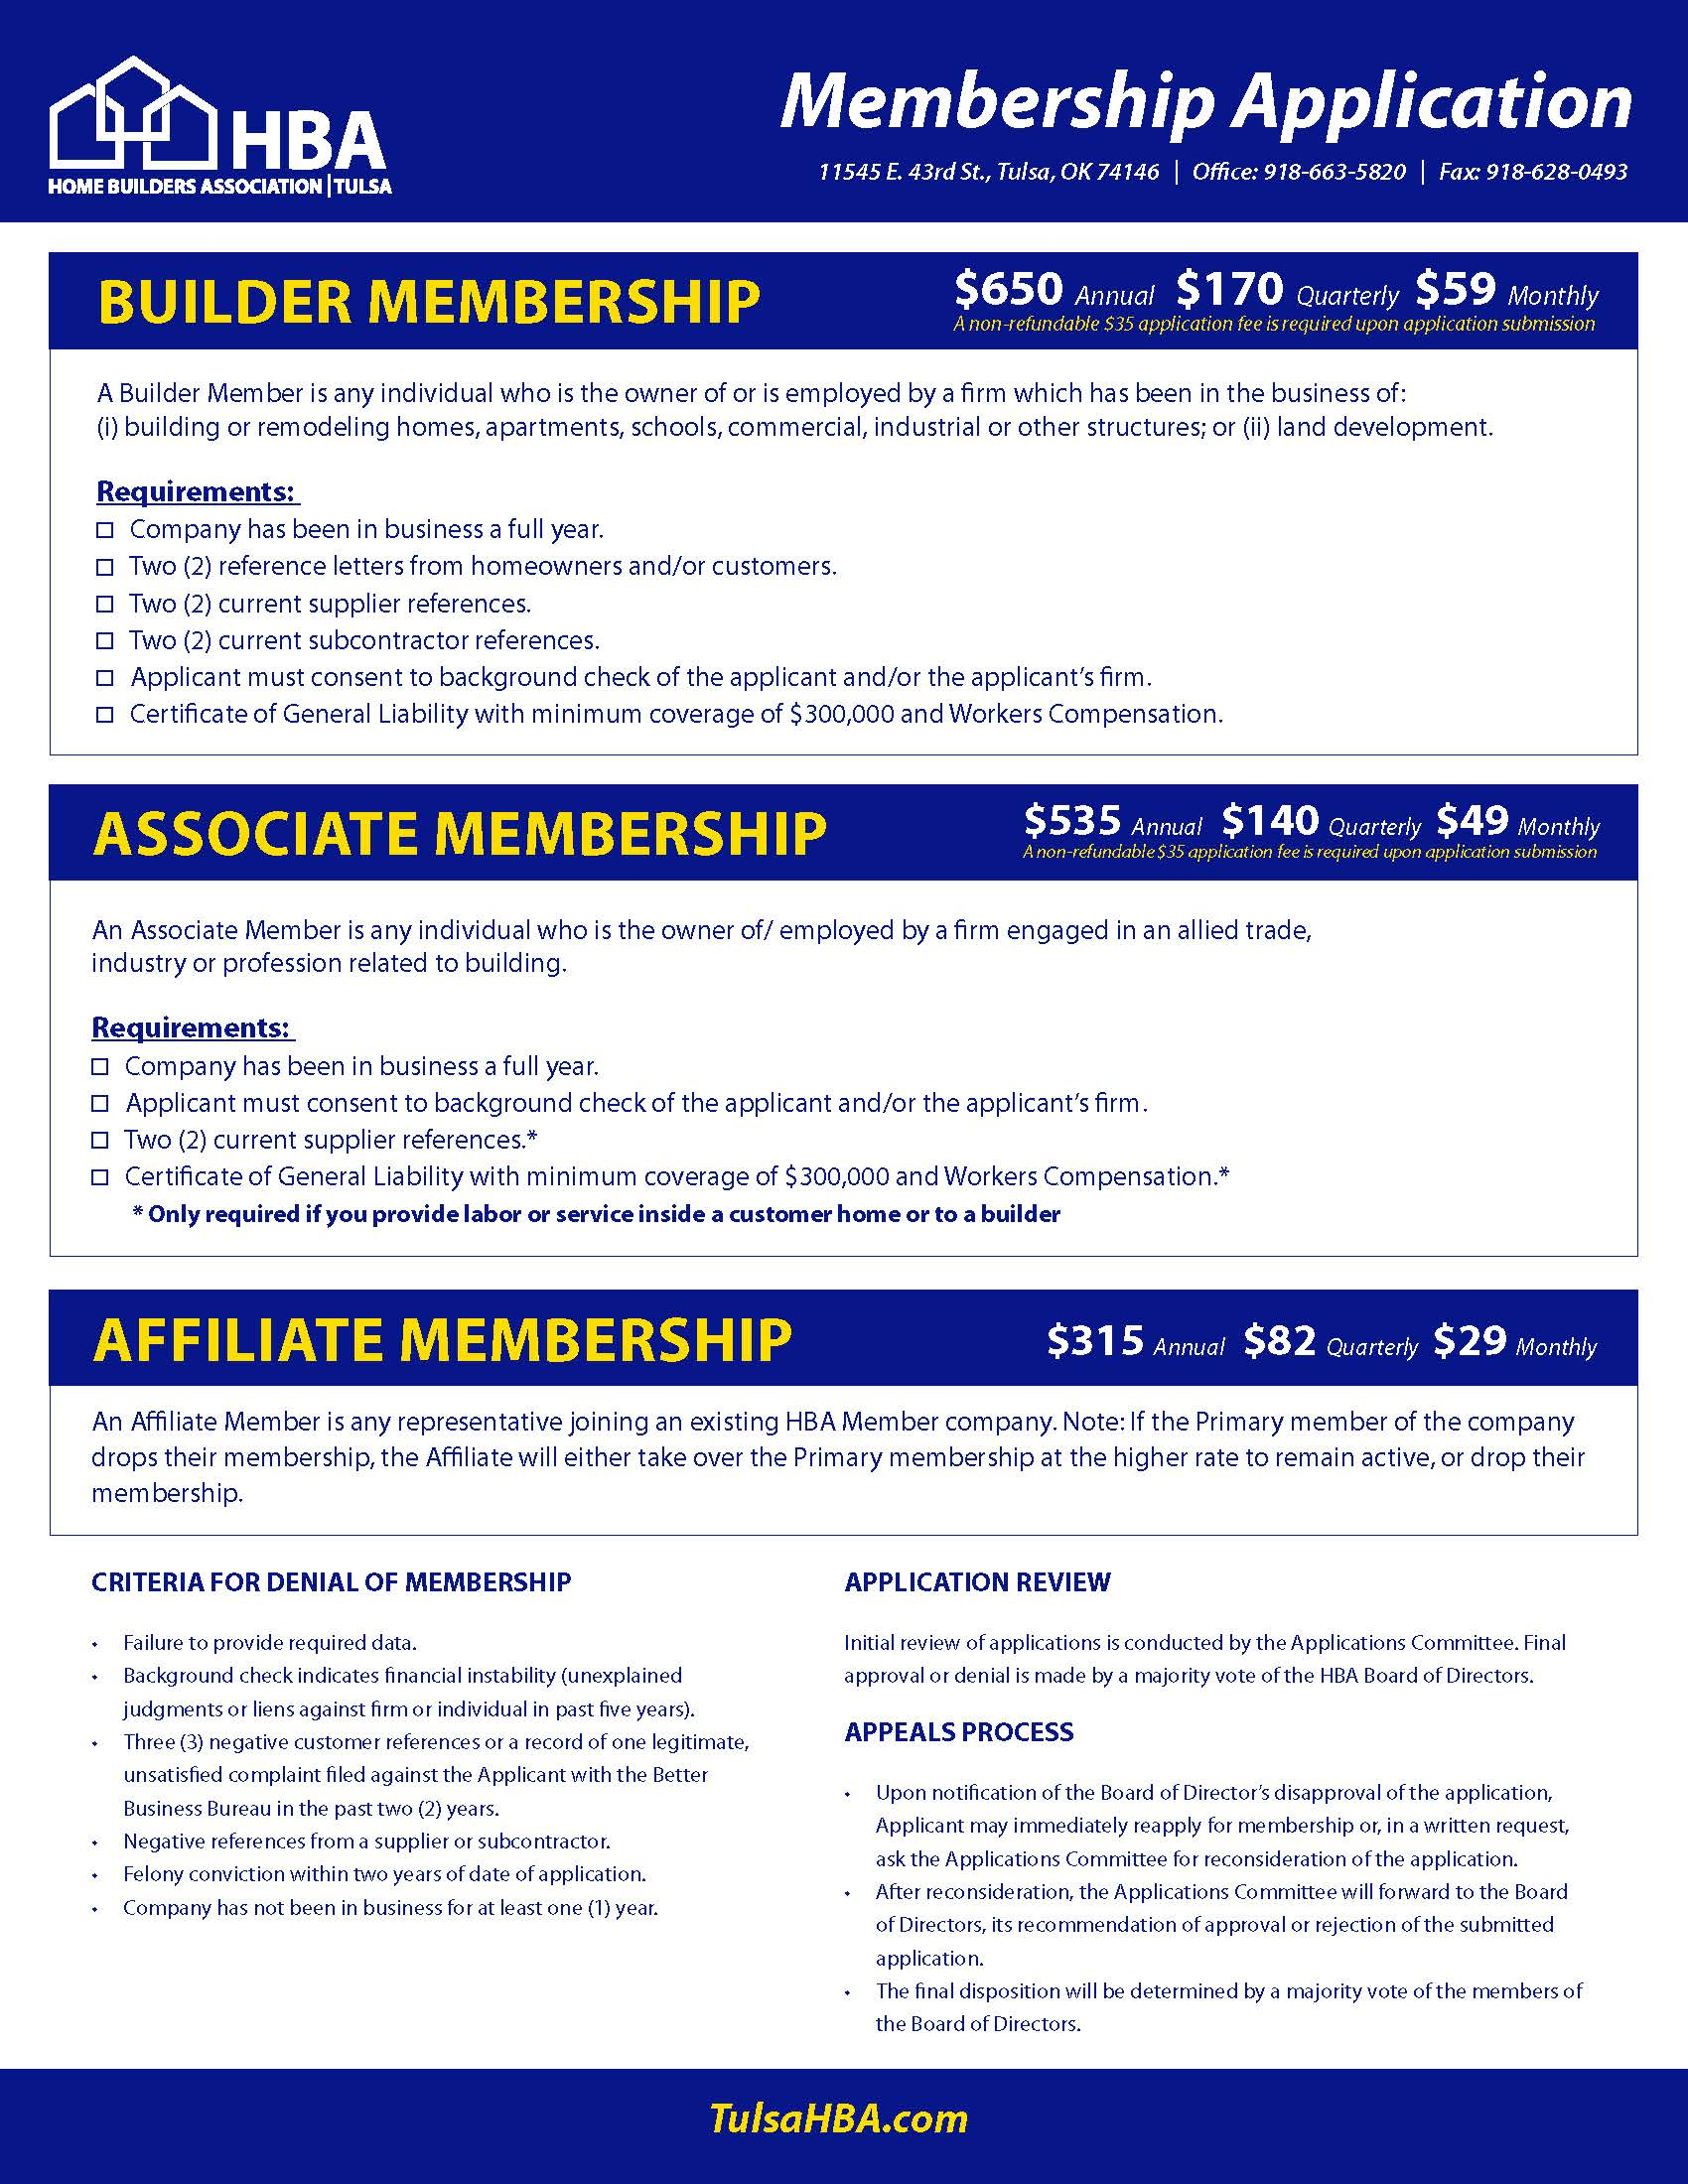 2019-HBA-Membership-Application_Page_1.jpg